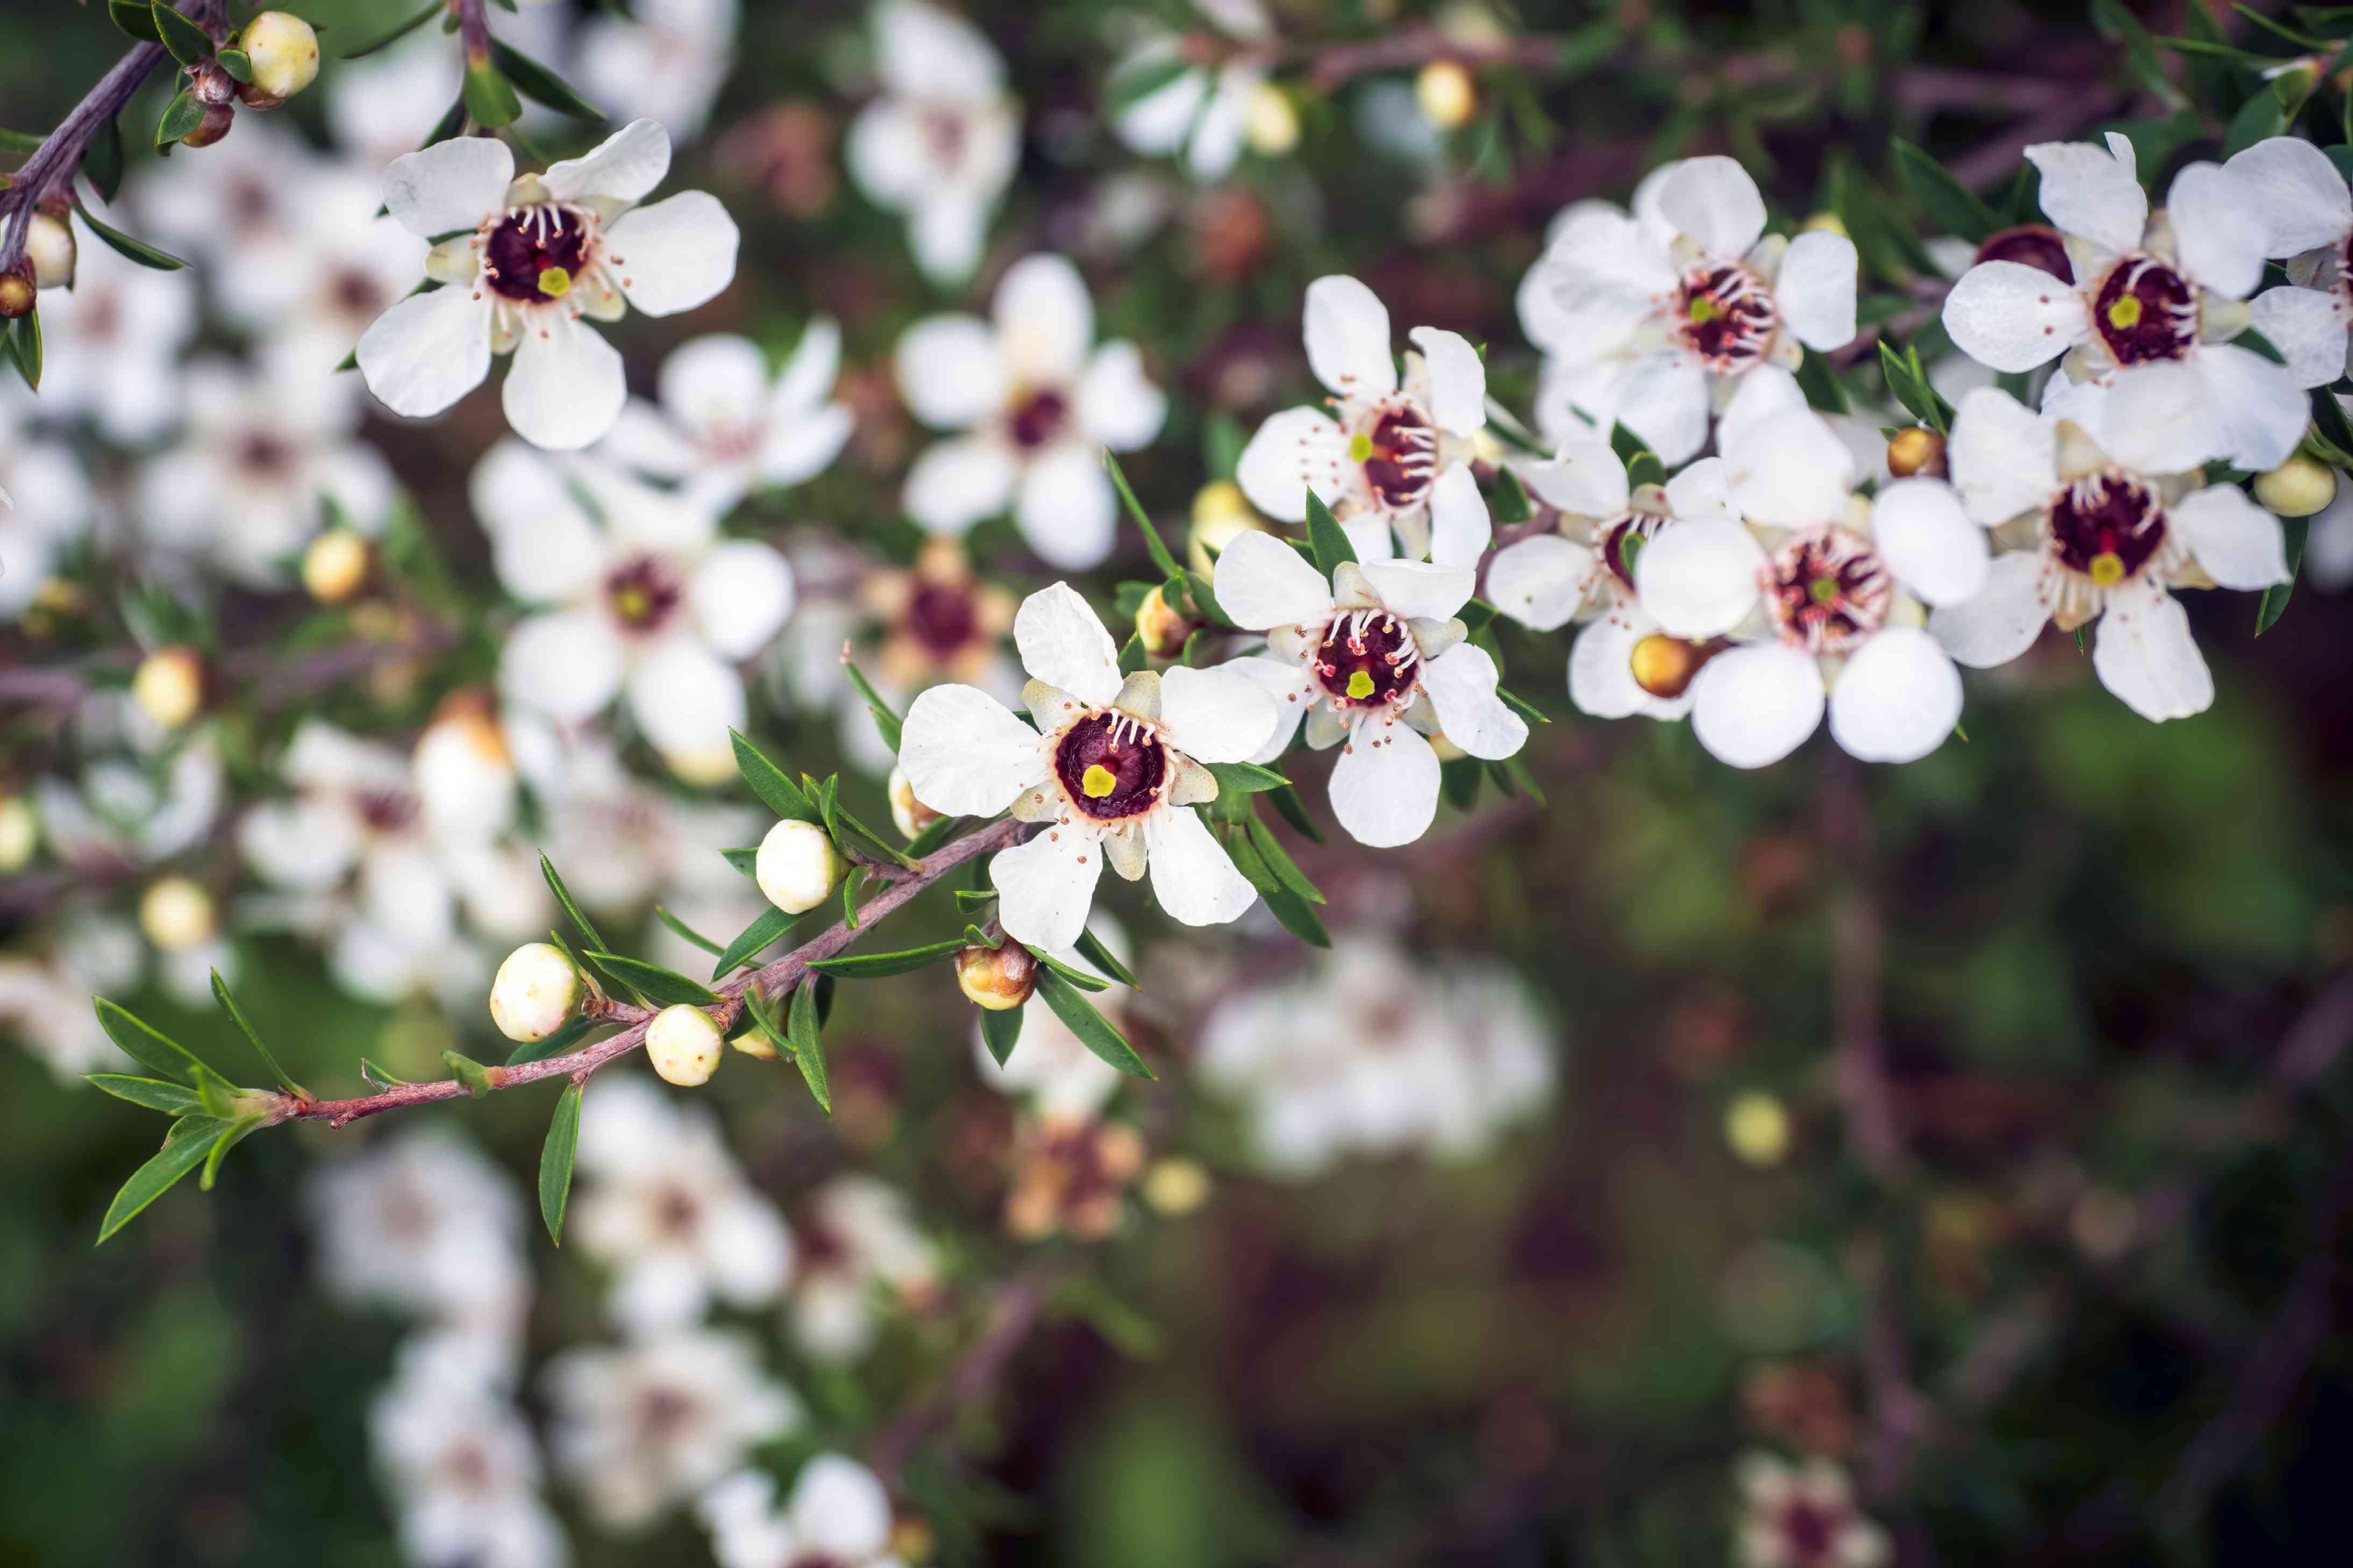 New Zealand tea tree branch with small white blossoms with red centers and round white buds with small prickly leaves